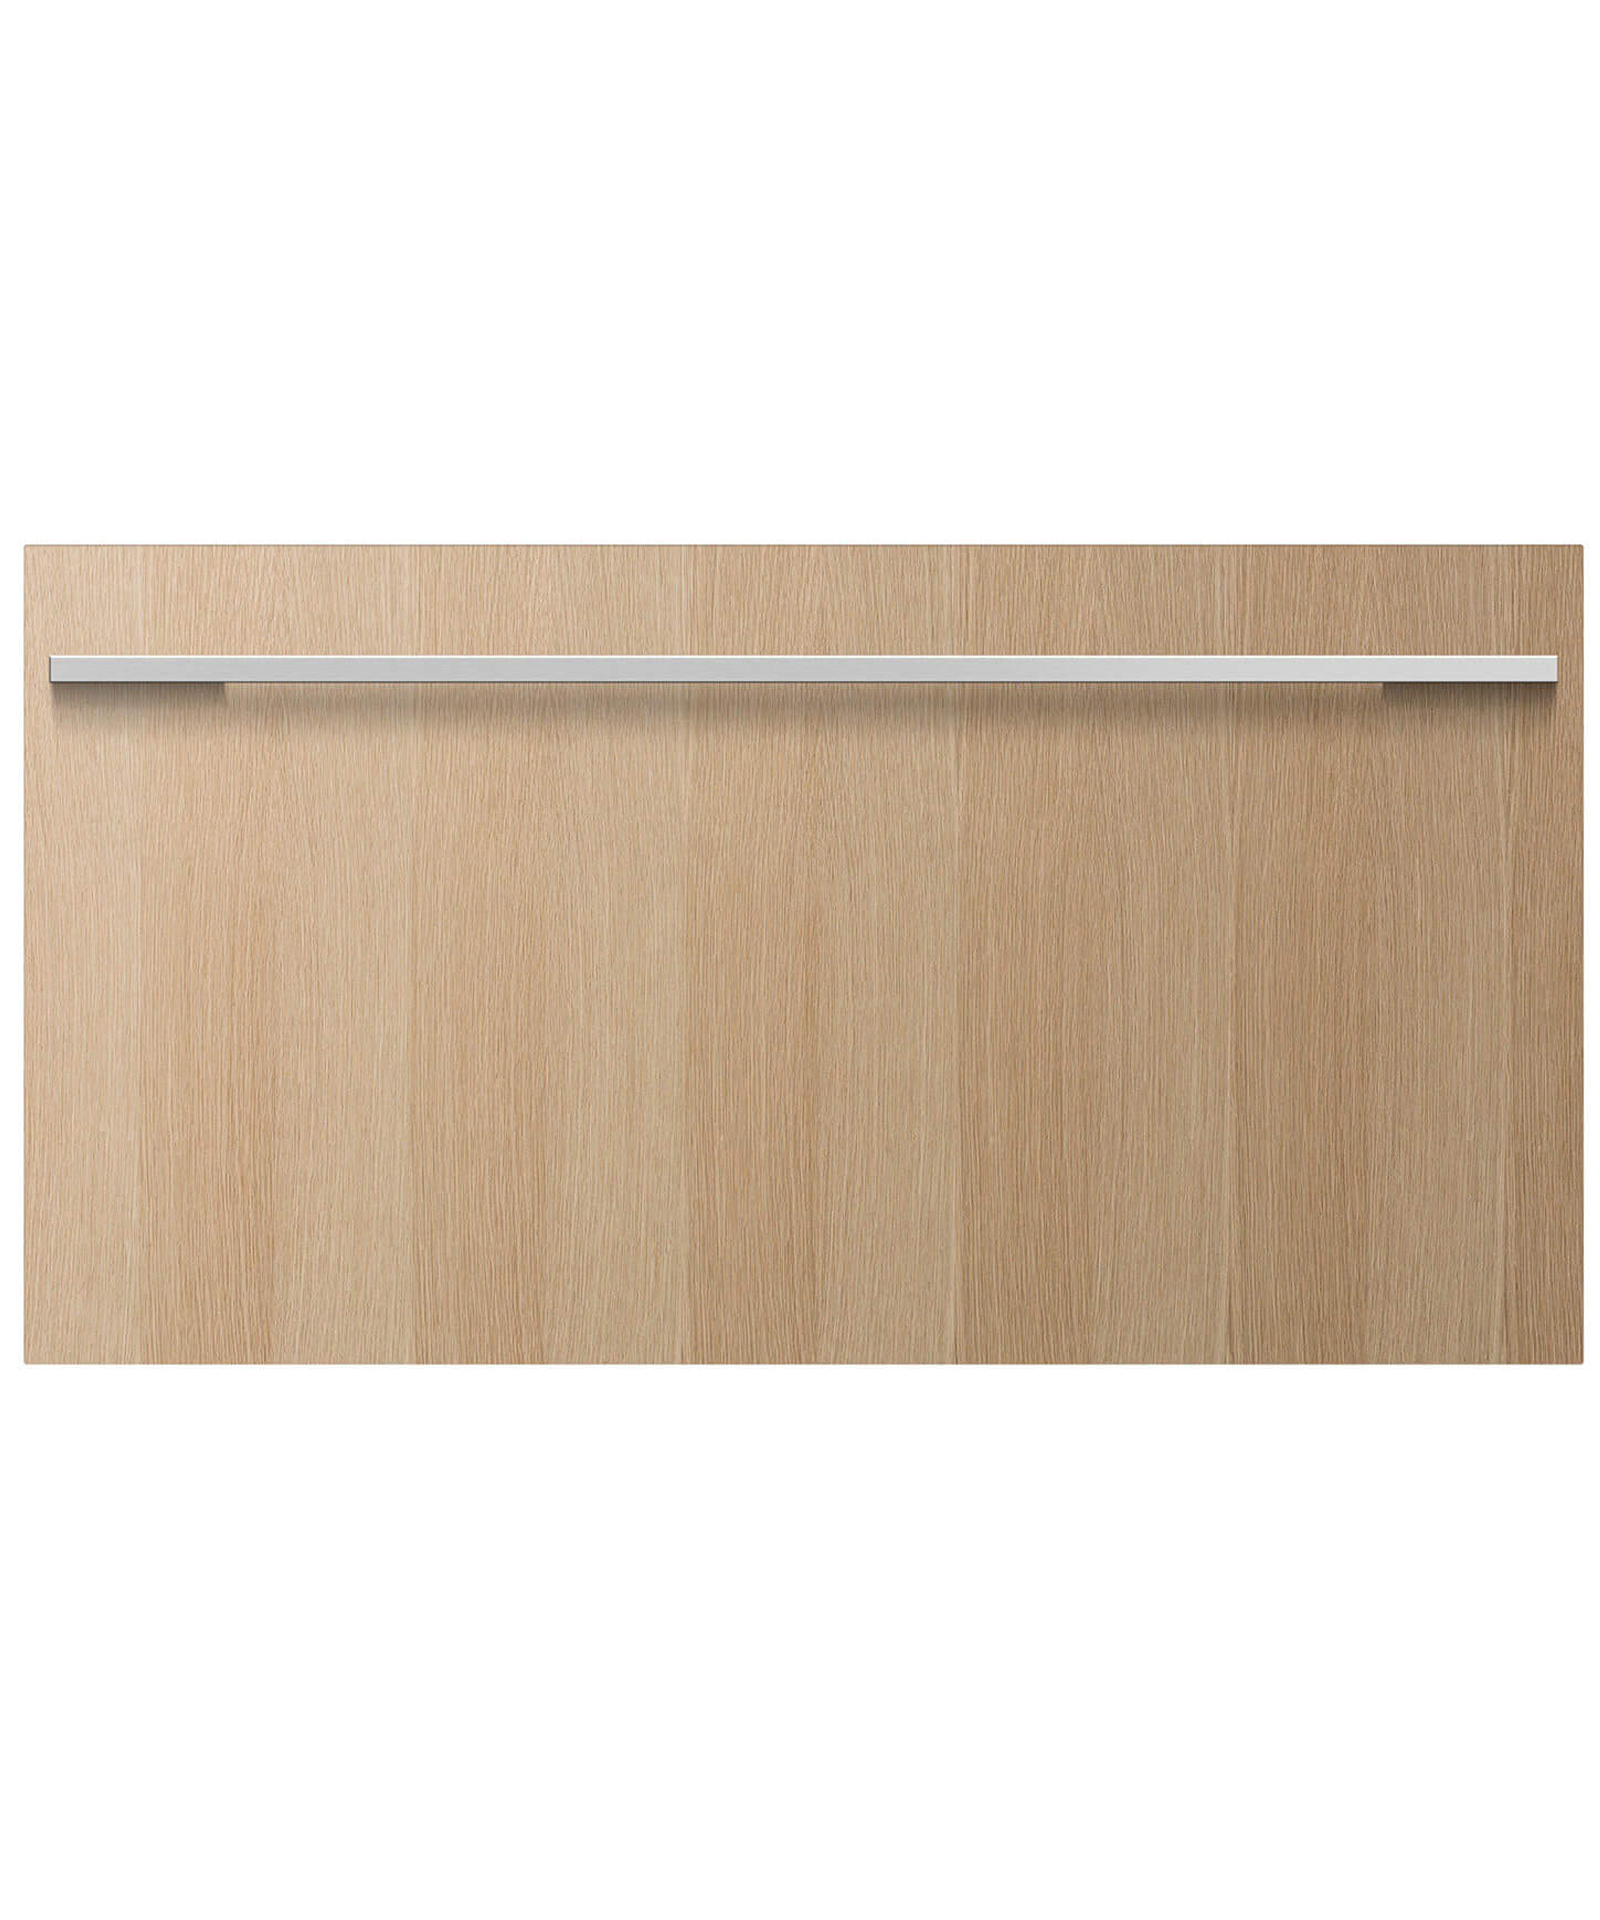 "RB36S25MKIW1_N - 36"" CoolDrawer™ Multi-temperature Drawer - 24877"